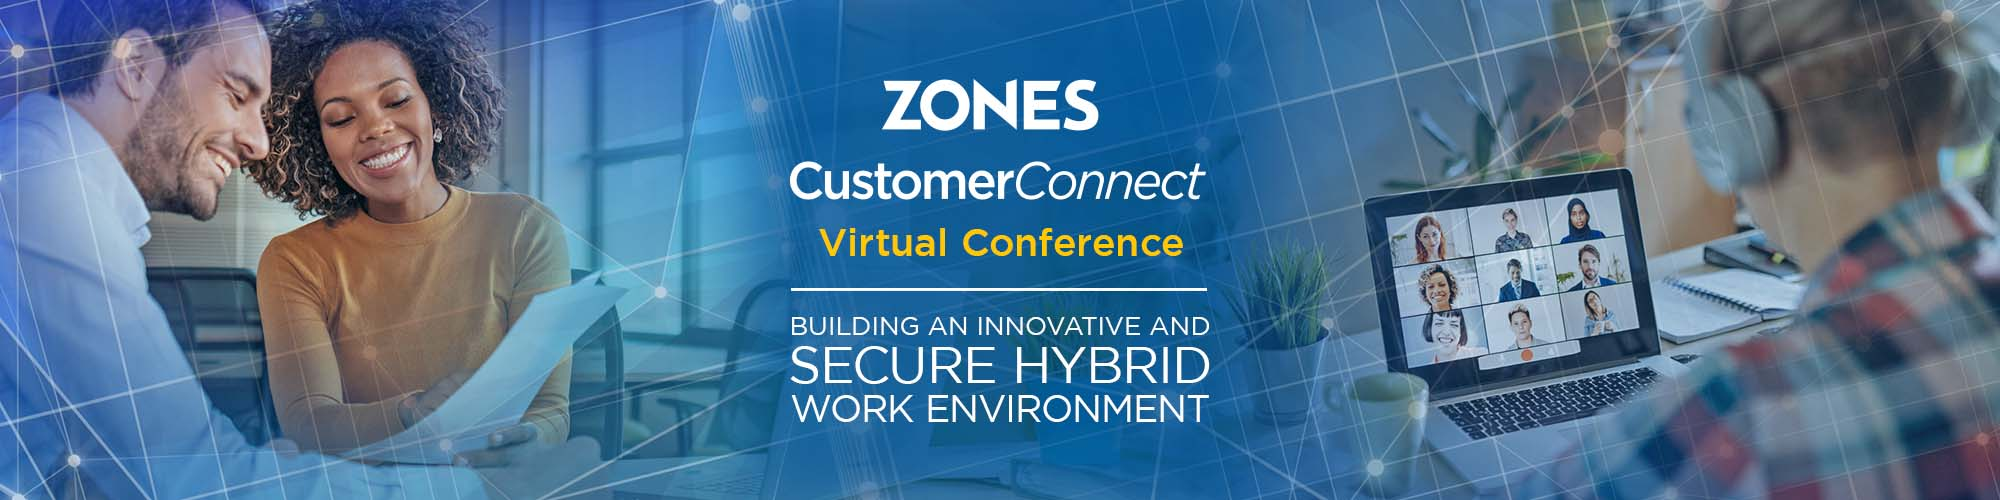 Zones CustomerConnect: Virtual Conference August 3, 2021 - Building an Innovative and Secure Hybrid Work Environment